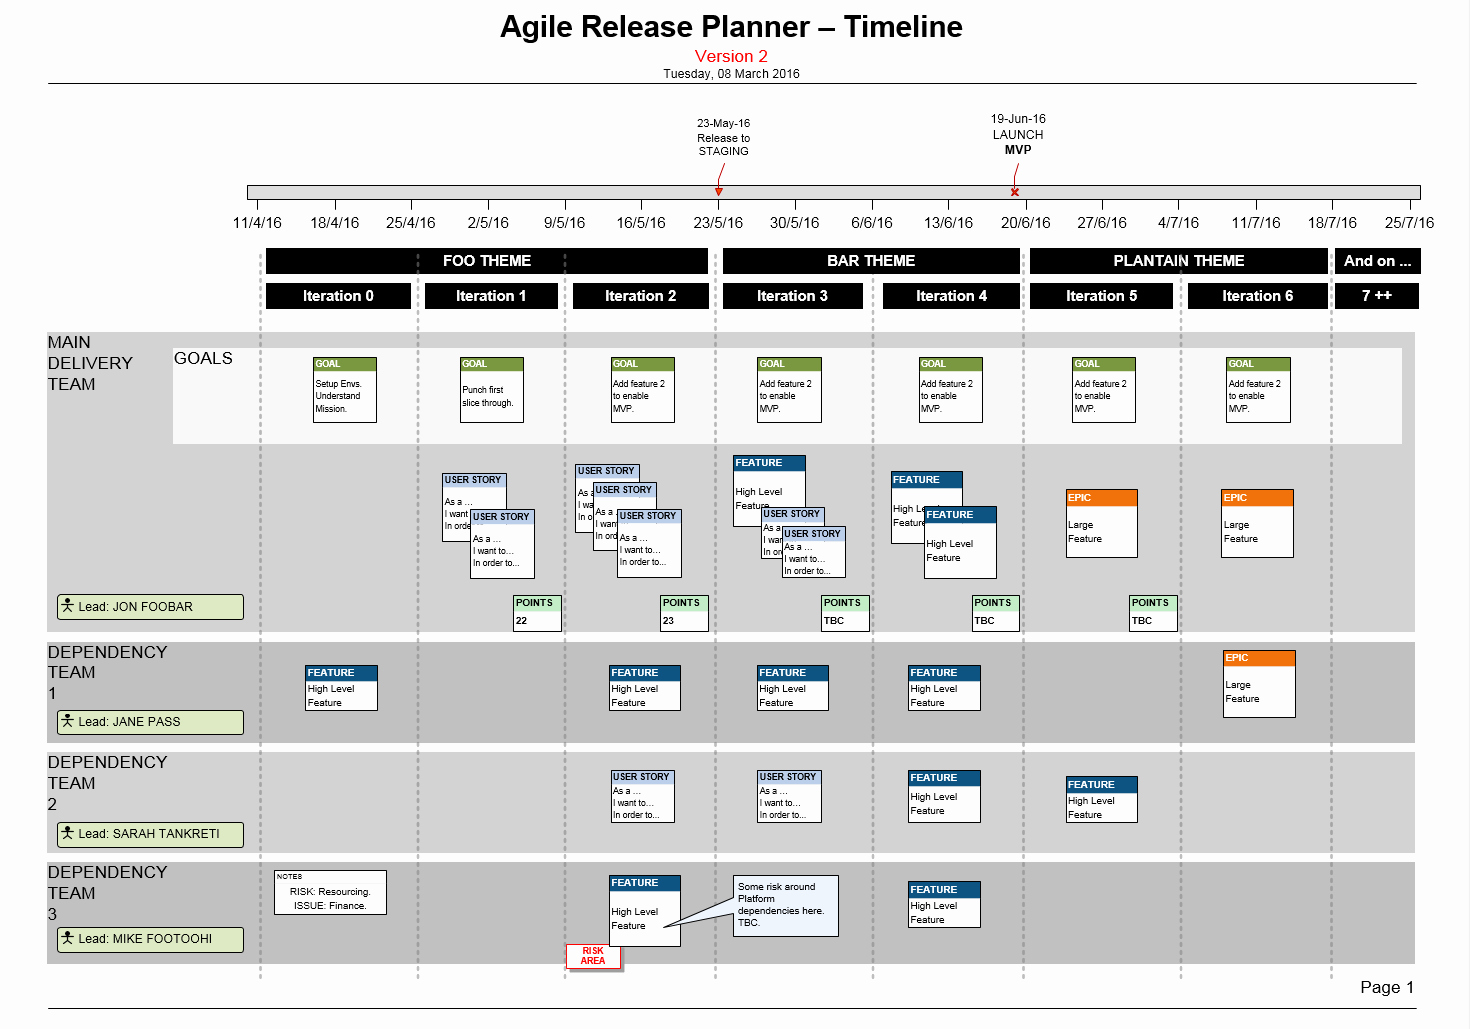 Software Release Plan Template Unique Visio Agile Release Plan for Scrum Teams Story Map & Mvp